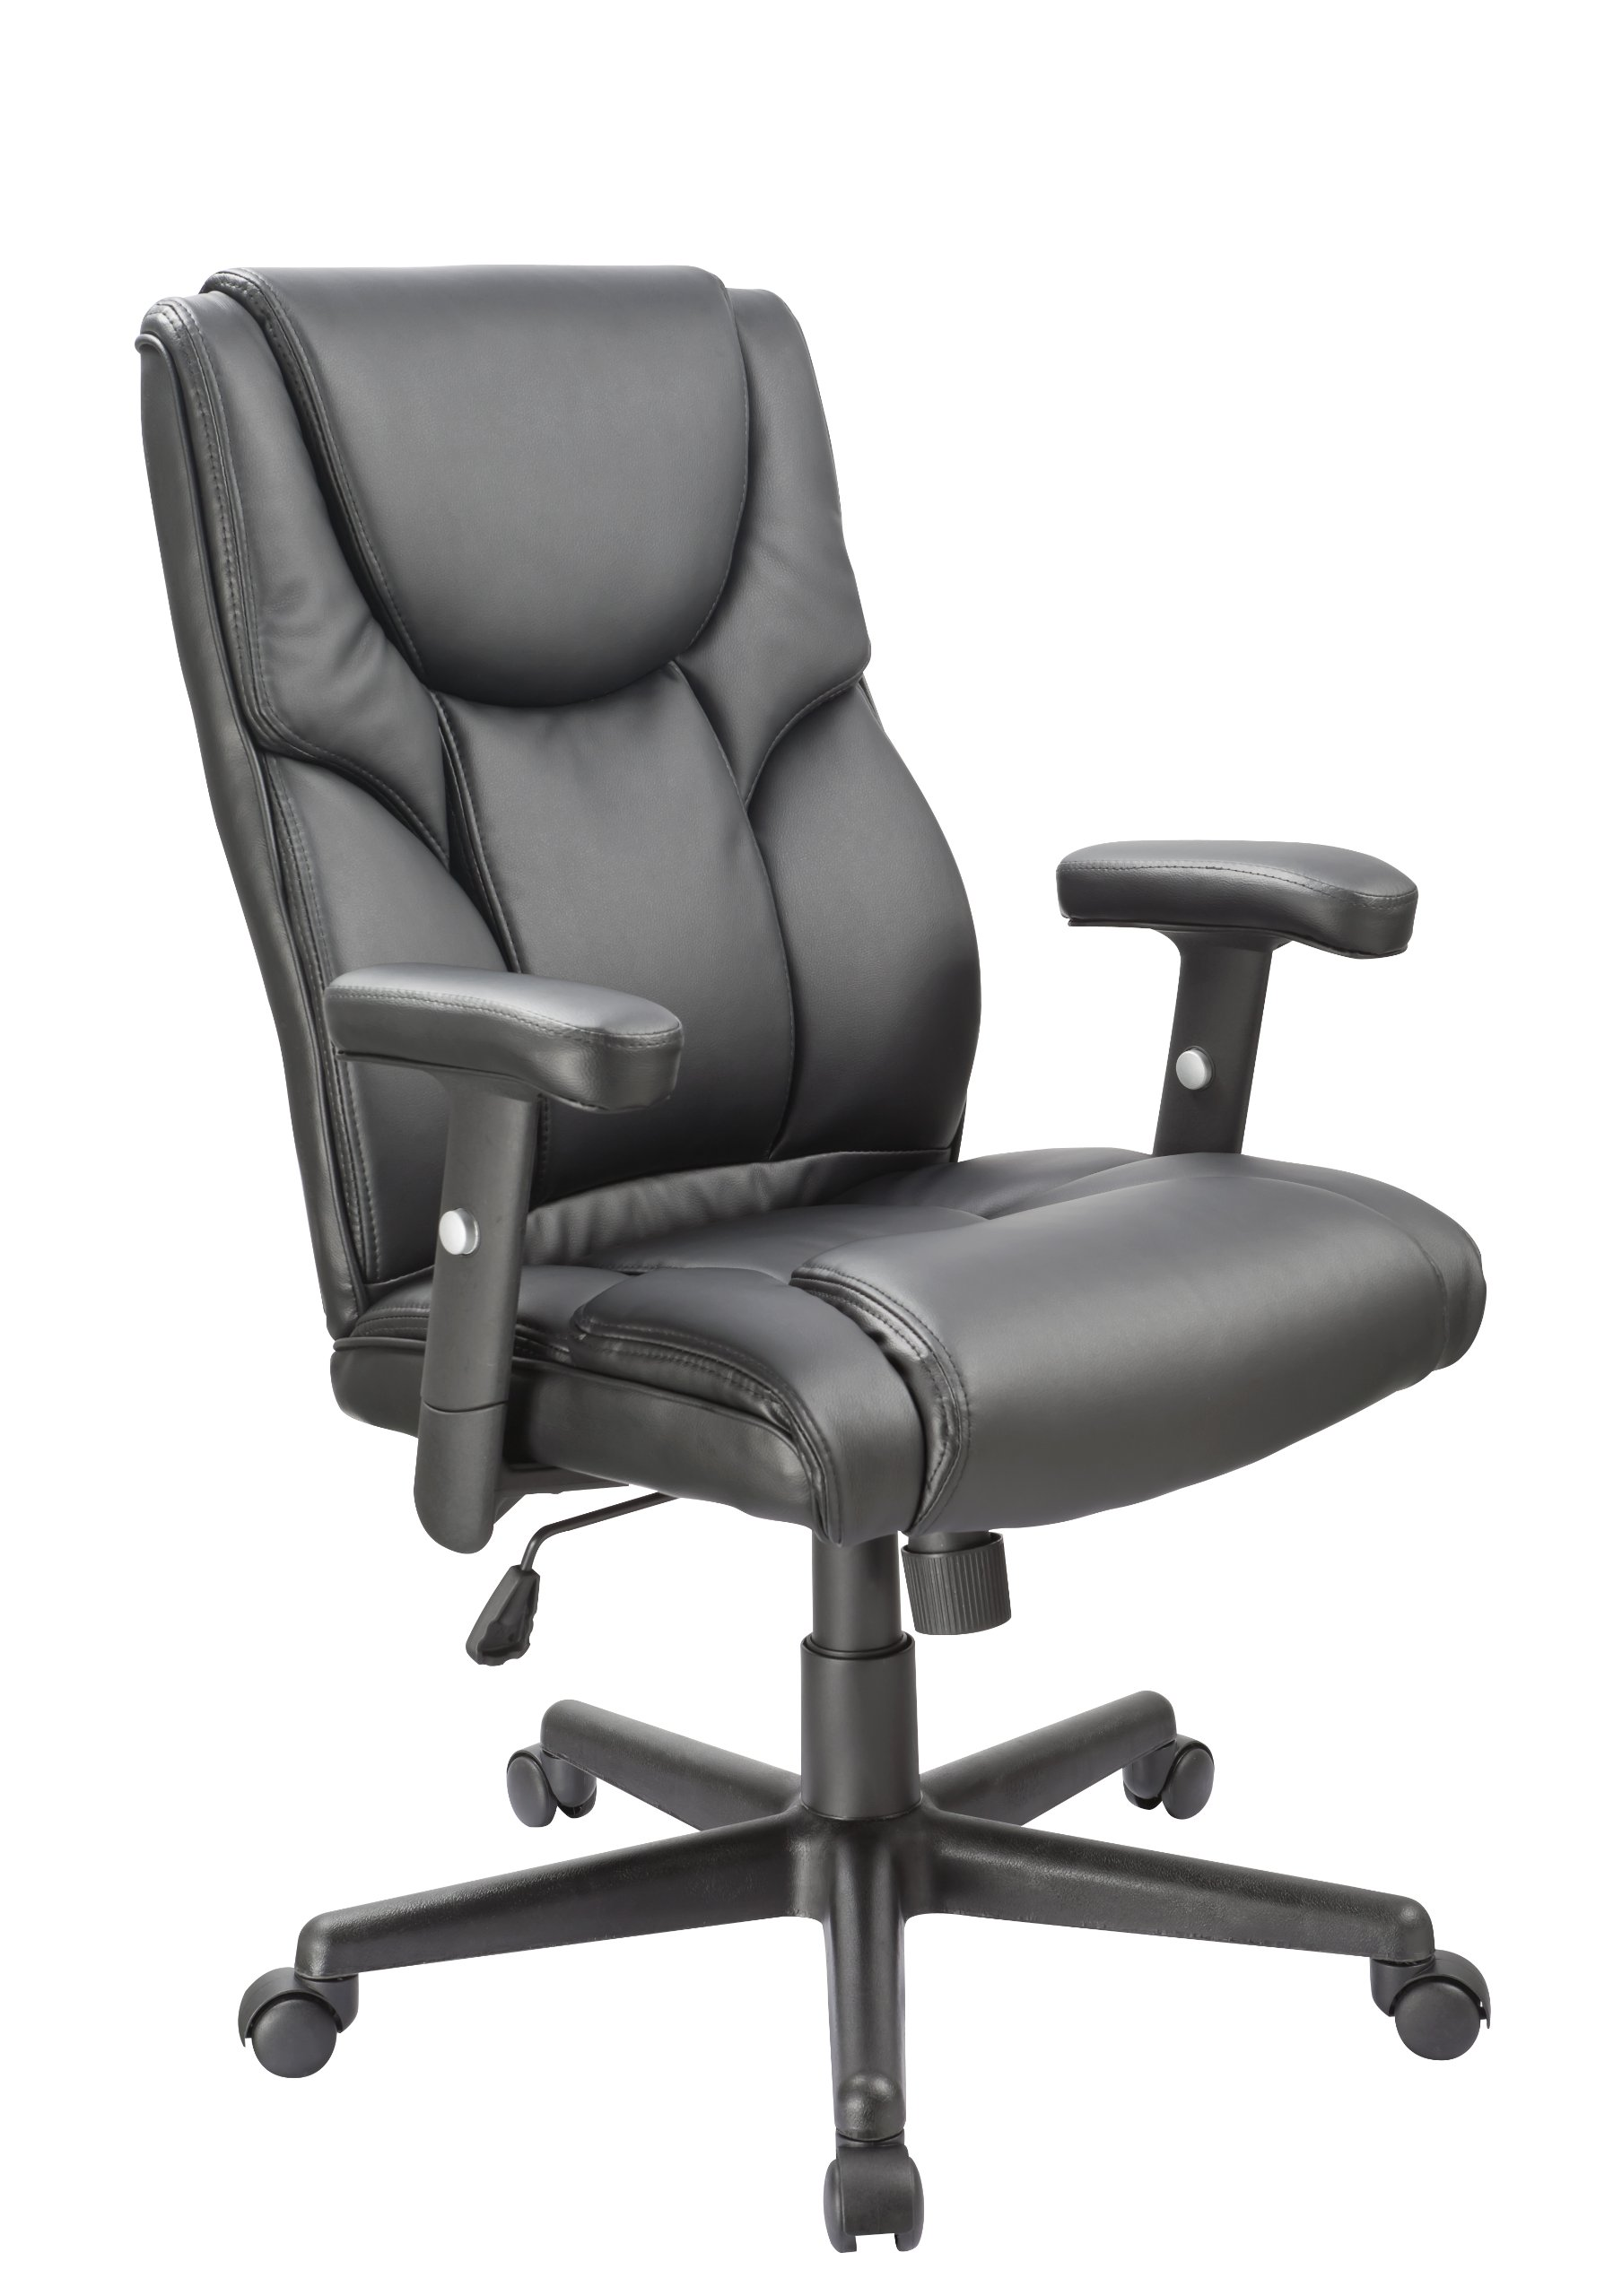 OFFICE FACTOR Leather Executive Office Chair, Ergonomic Chair Lumbar Support, Swivel Chair, Black Leather Executive Chair Office